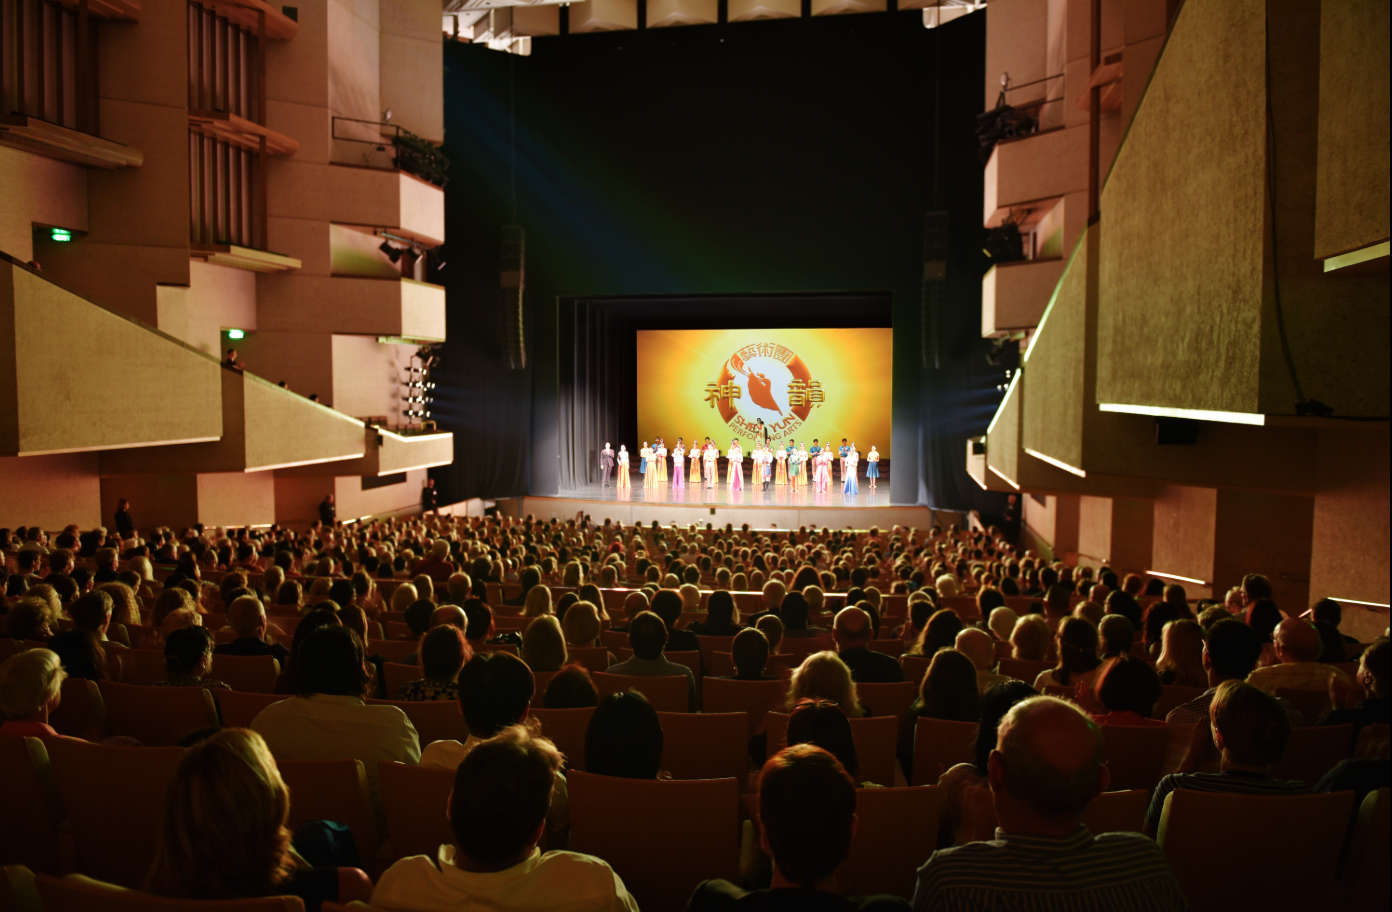 Brisbane Music Lecturer Congratulates Shen Yun for Showcasing Both East and West Art